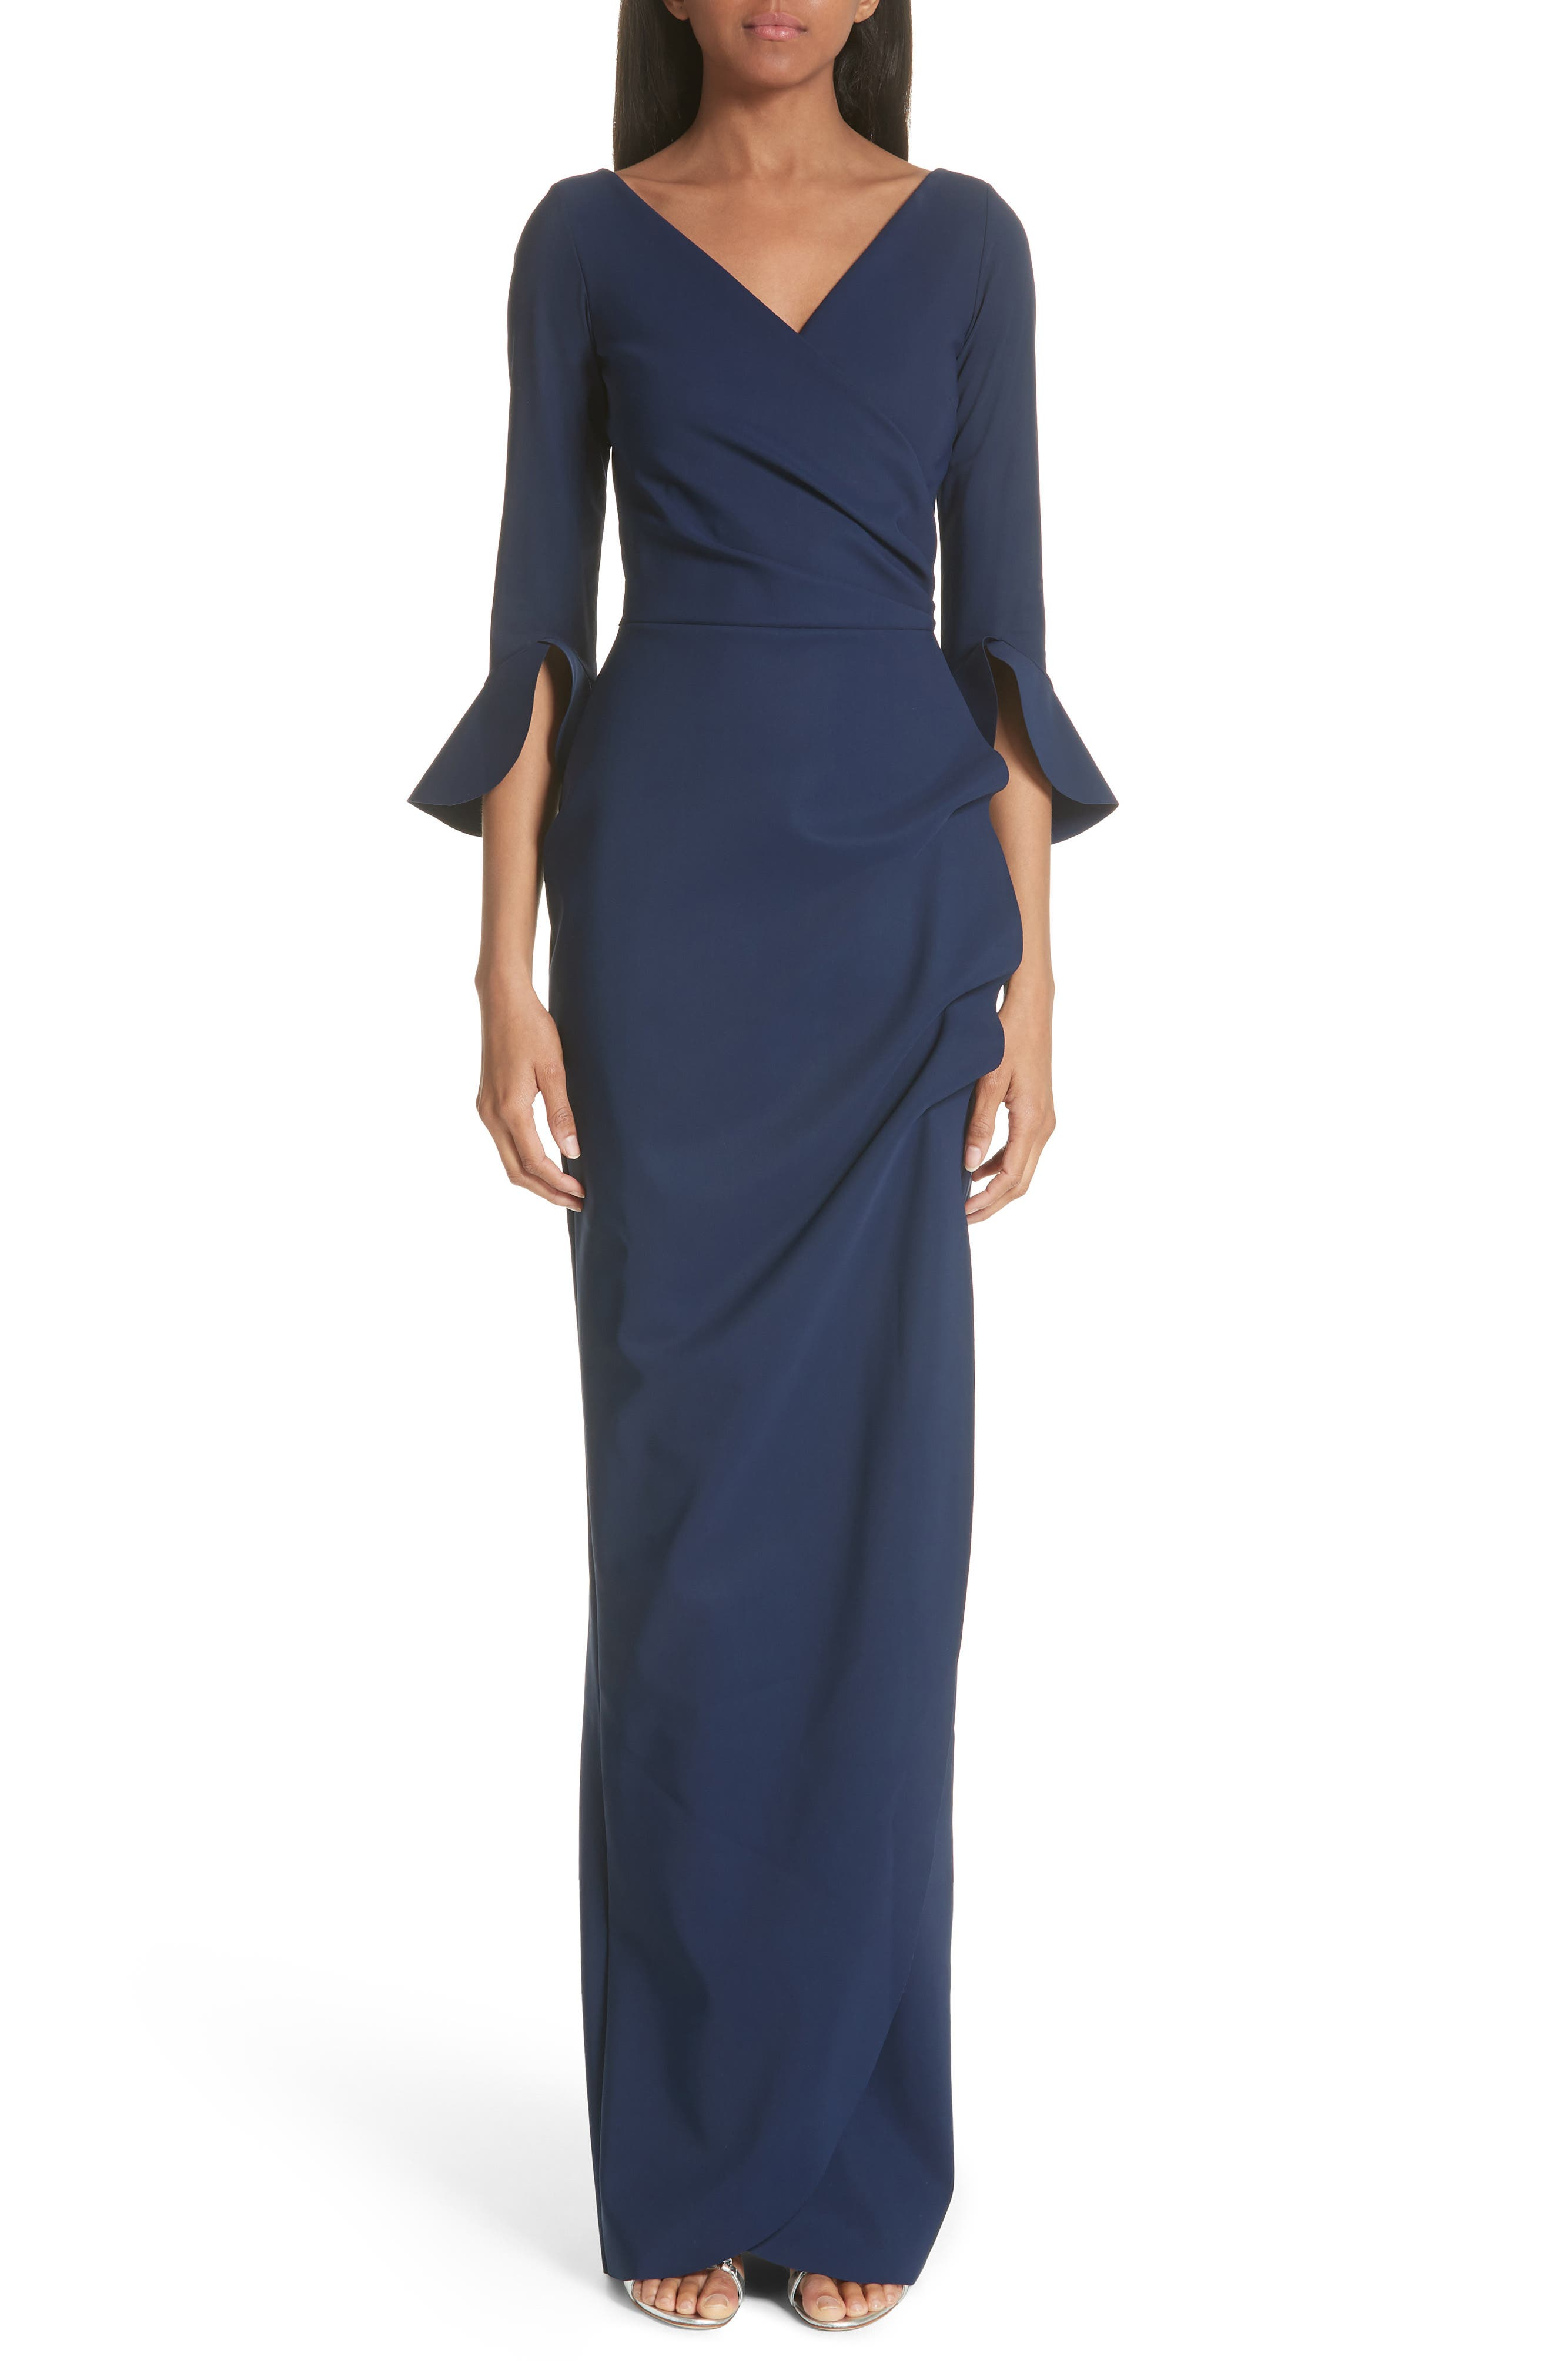 Ruched Bell Sleeve Evening Dress,                         Main,                         color, BLUE NOTTE